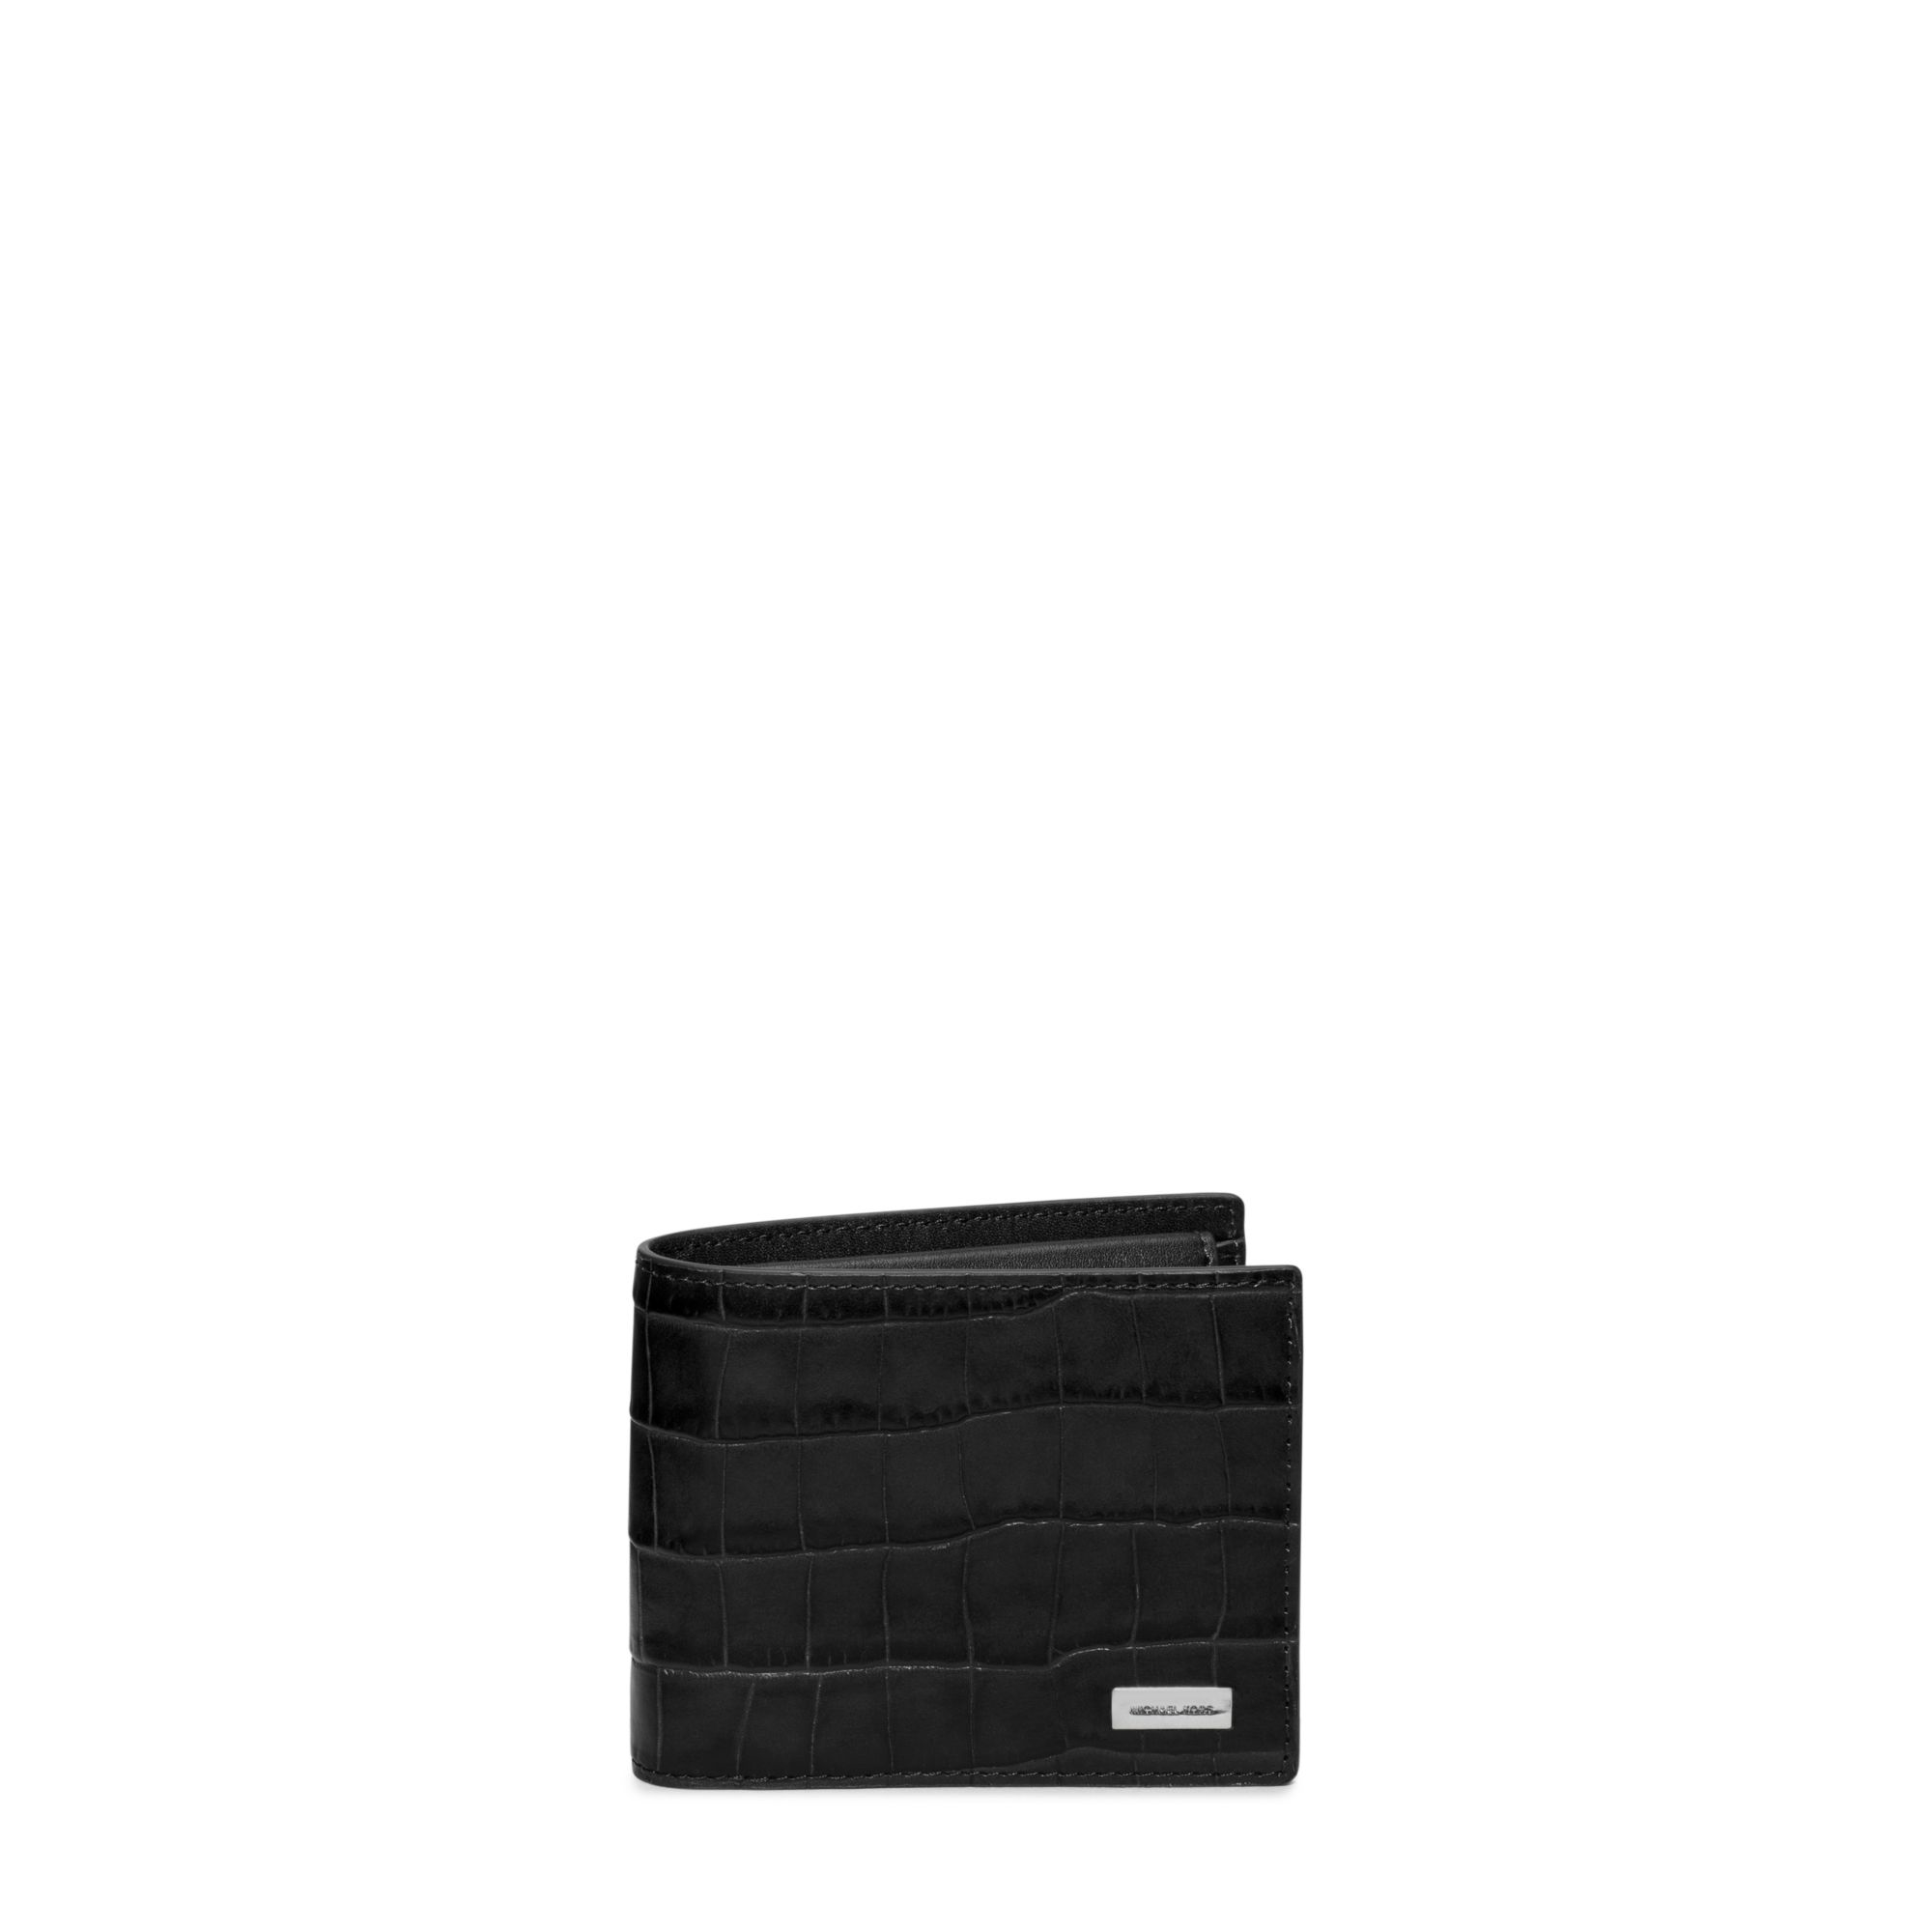 83e88ca9261f Michael Kors Mens Wallet With Coin Pocket | Stanford Center for ...